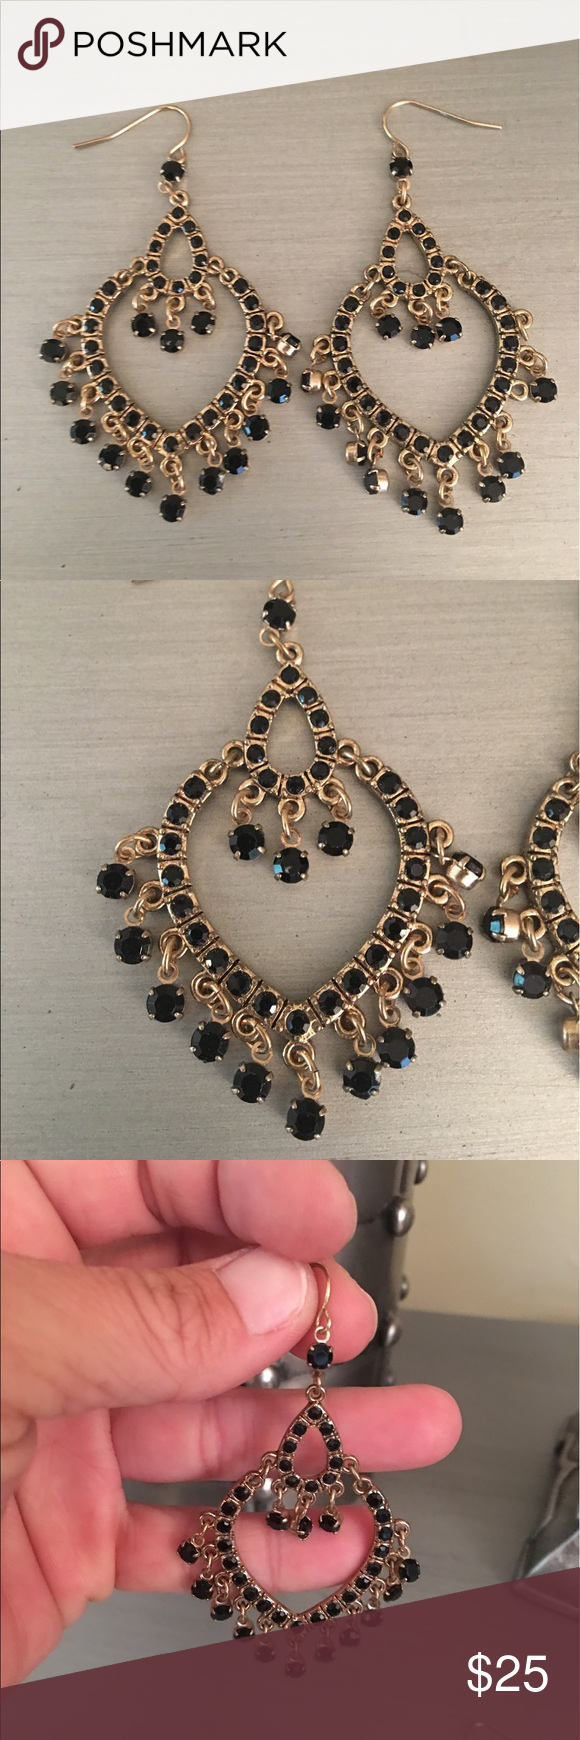 🛍 Black Gold Jeweled Chandelier Earrings Gold tone Boutique ...